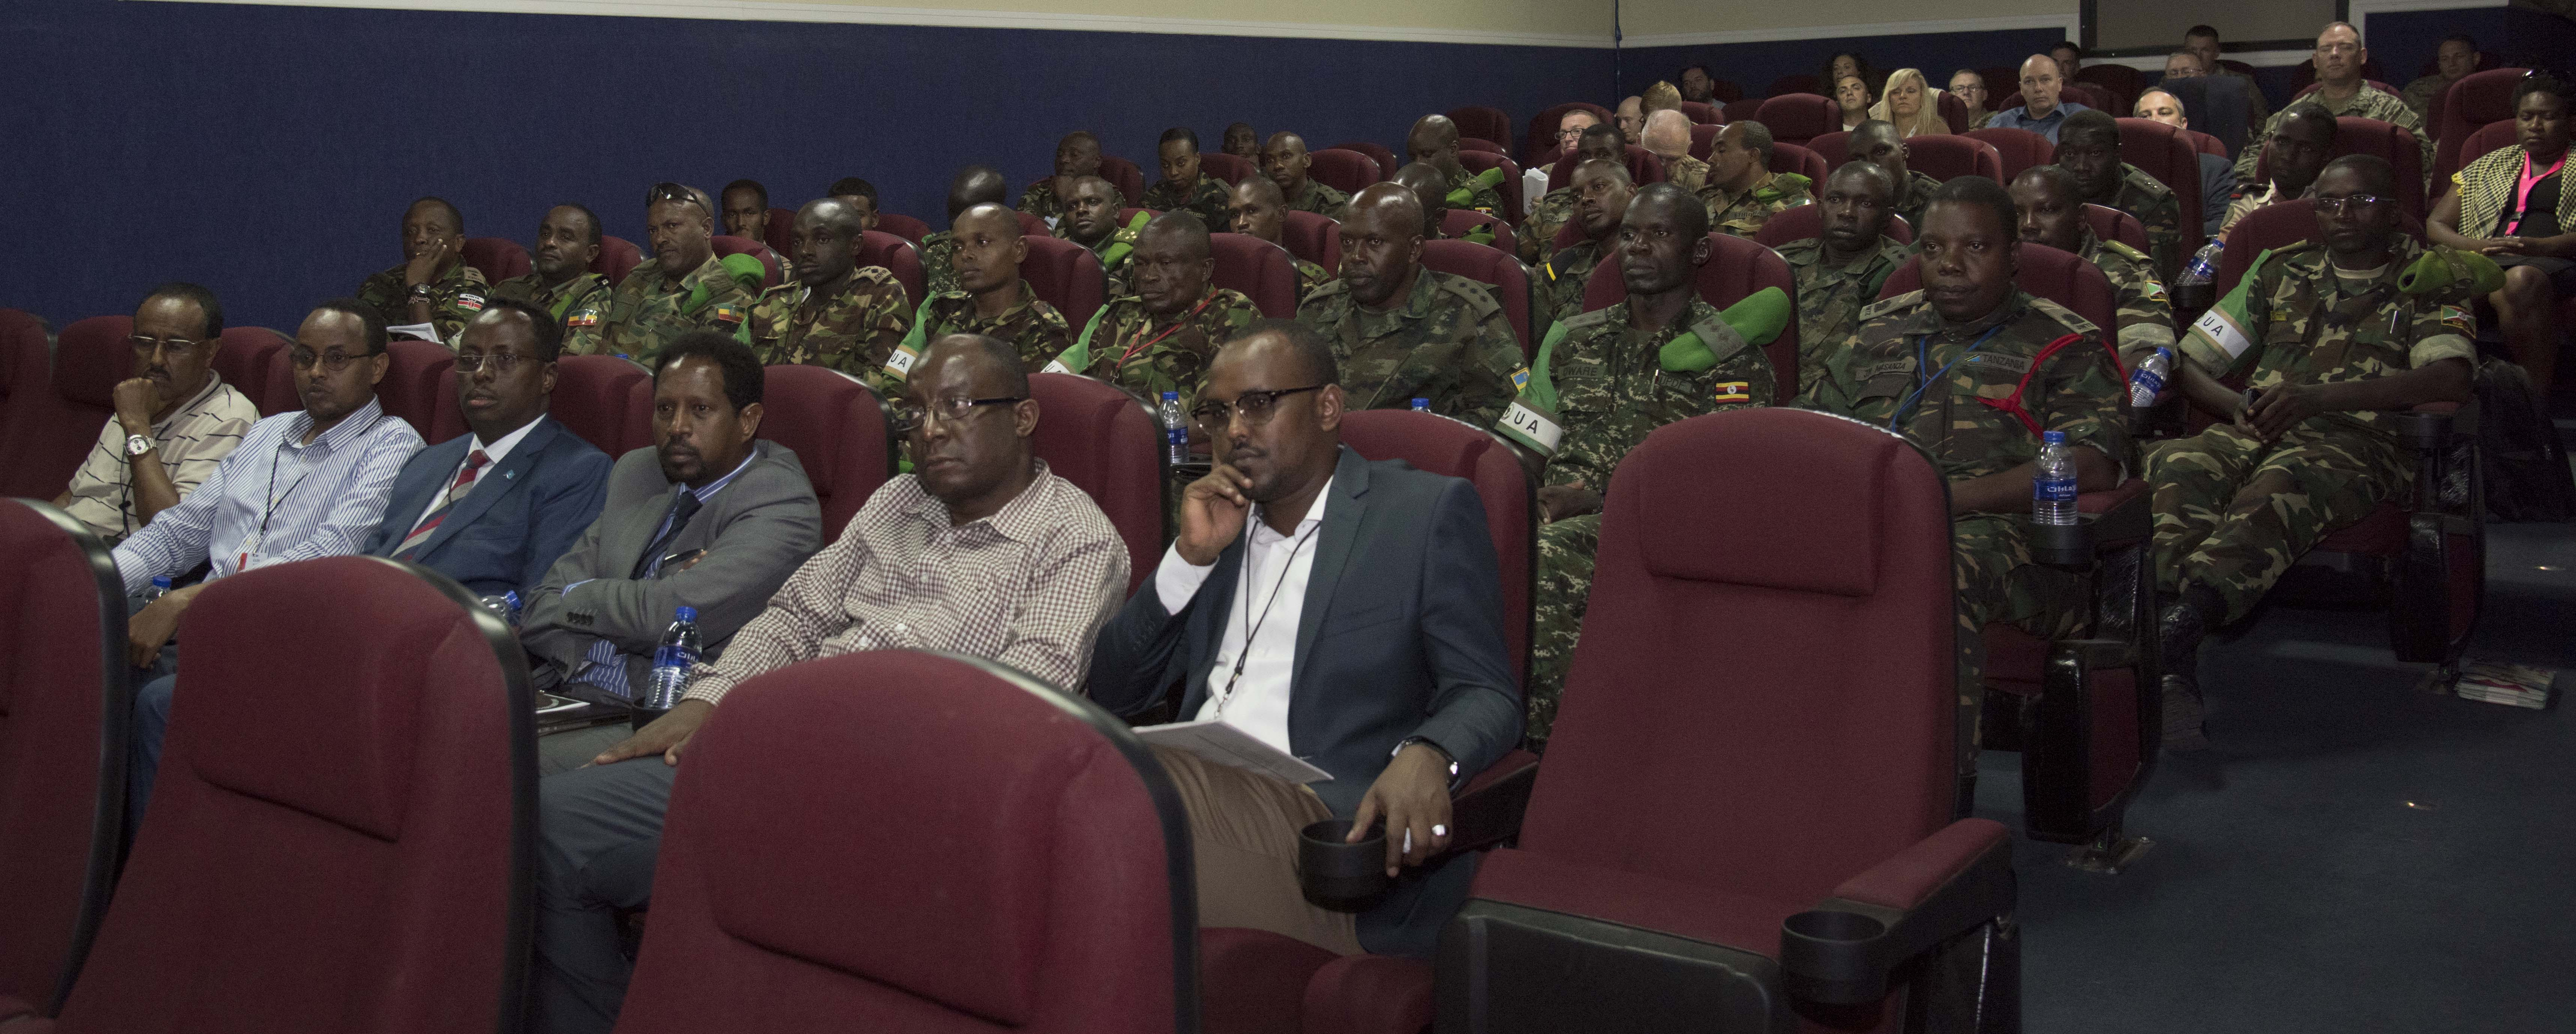 Members from the African Union Mission to Somalia and representatives from other partner nations listen to a presentation at the Public Information Officer Conference hosted by Combined Joint Task Force-Horn of Africa at Camp Lemonnier, Djibouti, Nov. 4, 2015. The conference provided attendees a better understanding of how interaction with their audiences aids mission success.